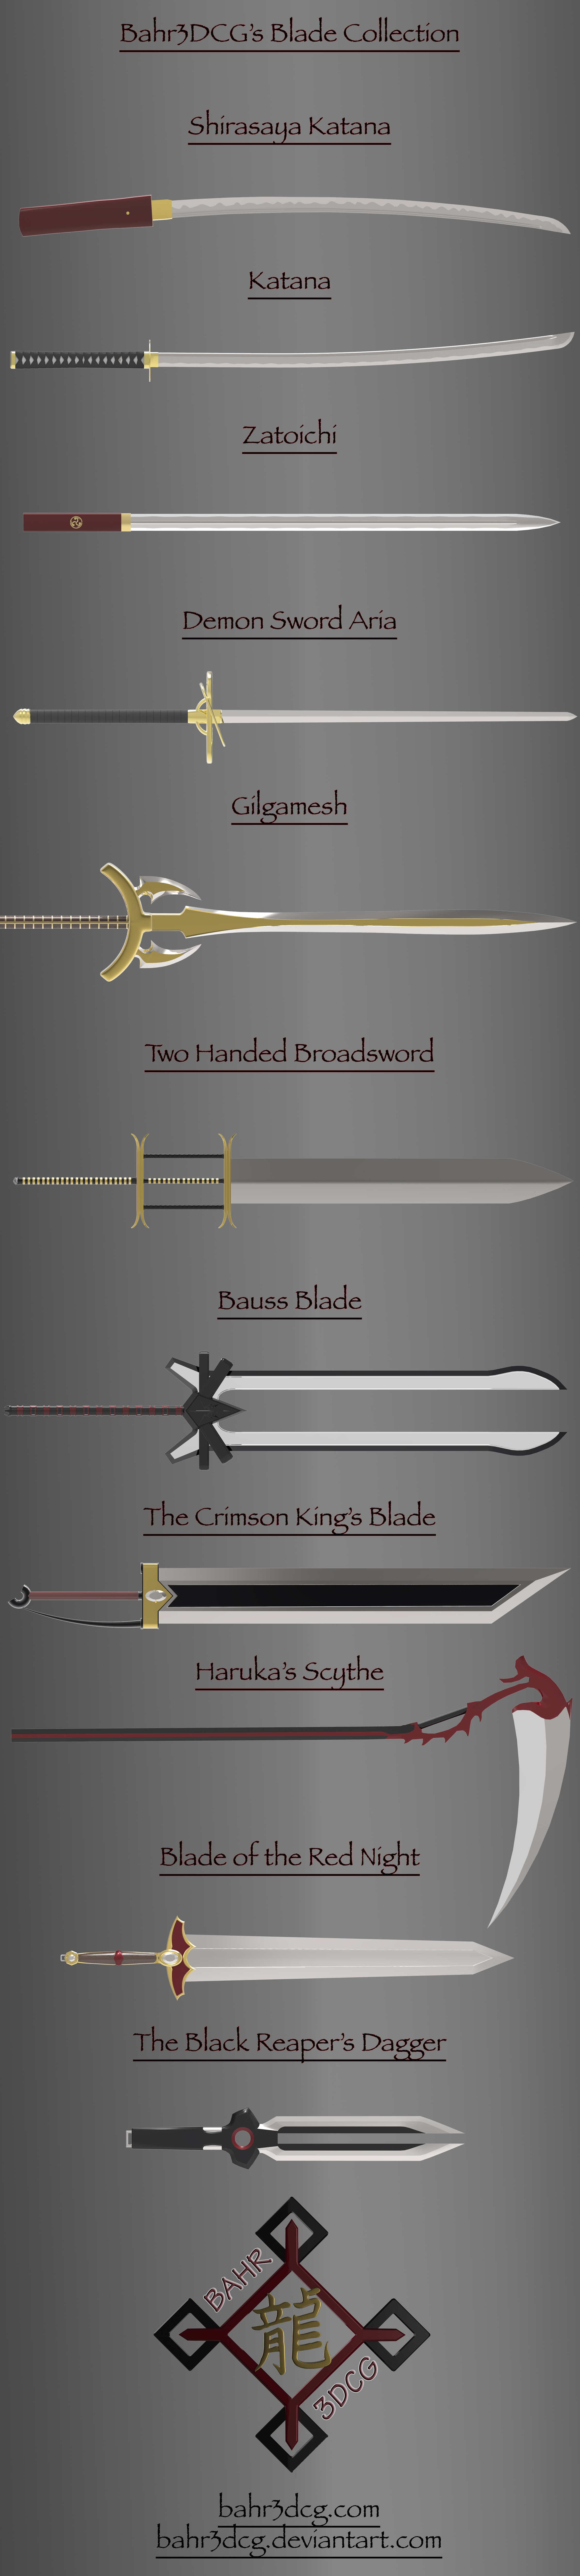 HD Bladed Weapons Collection by Bahr3DCG